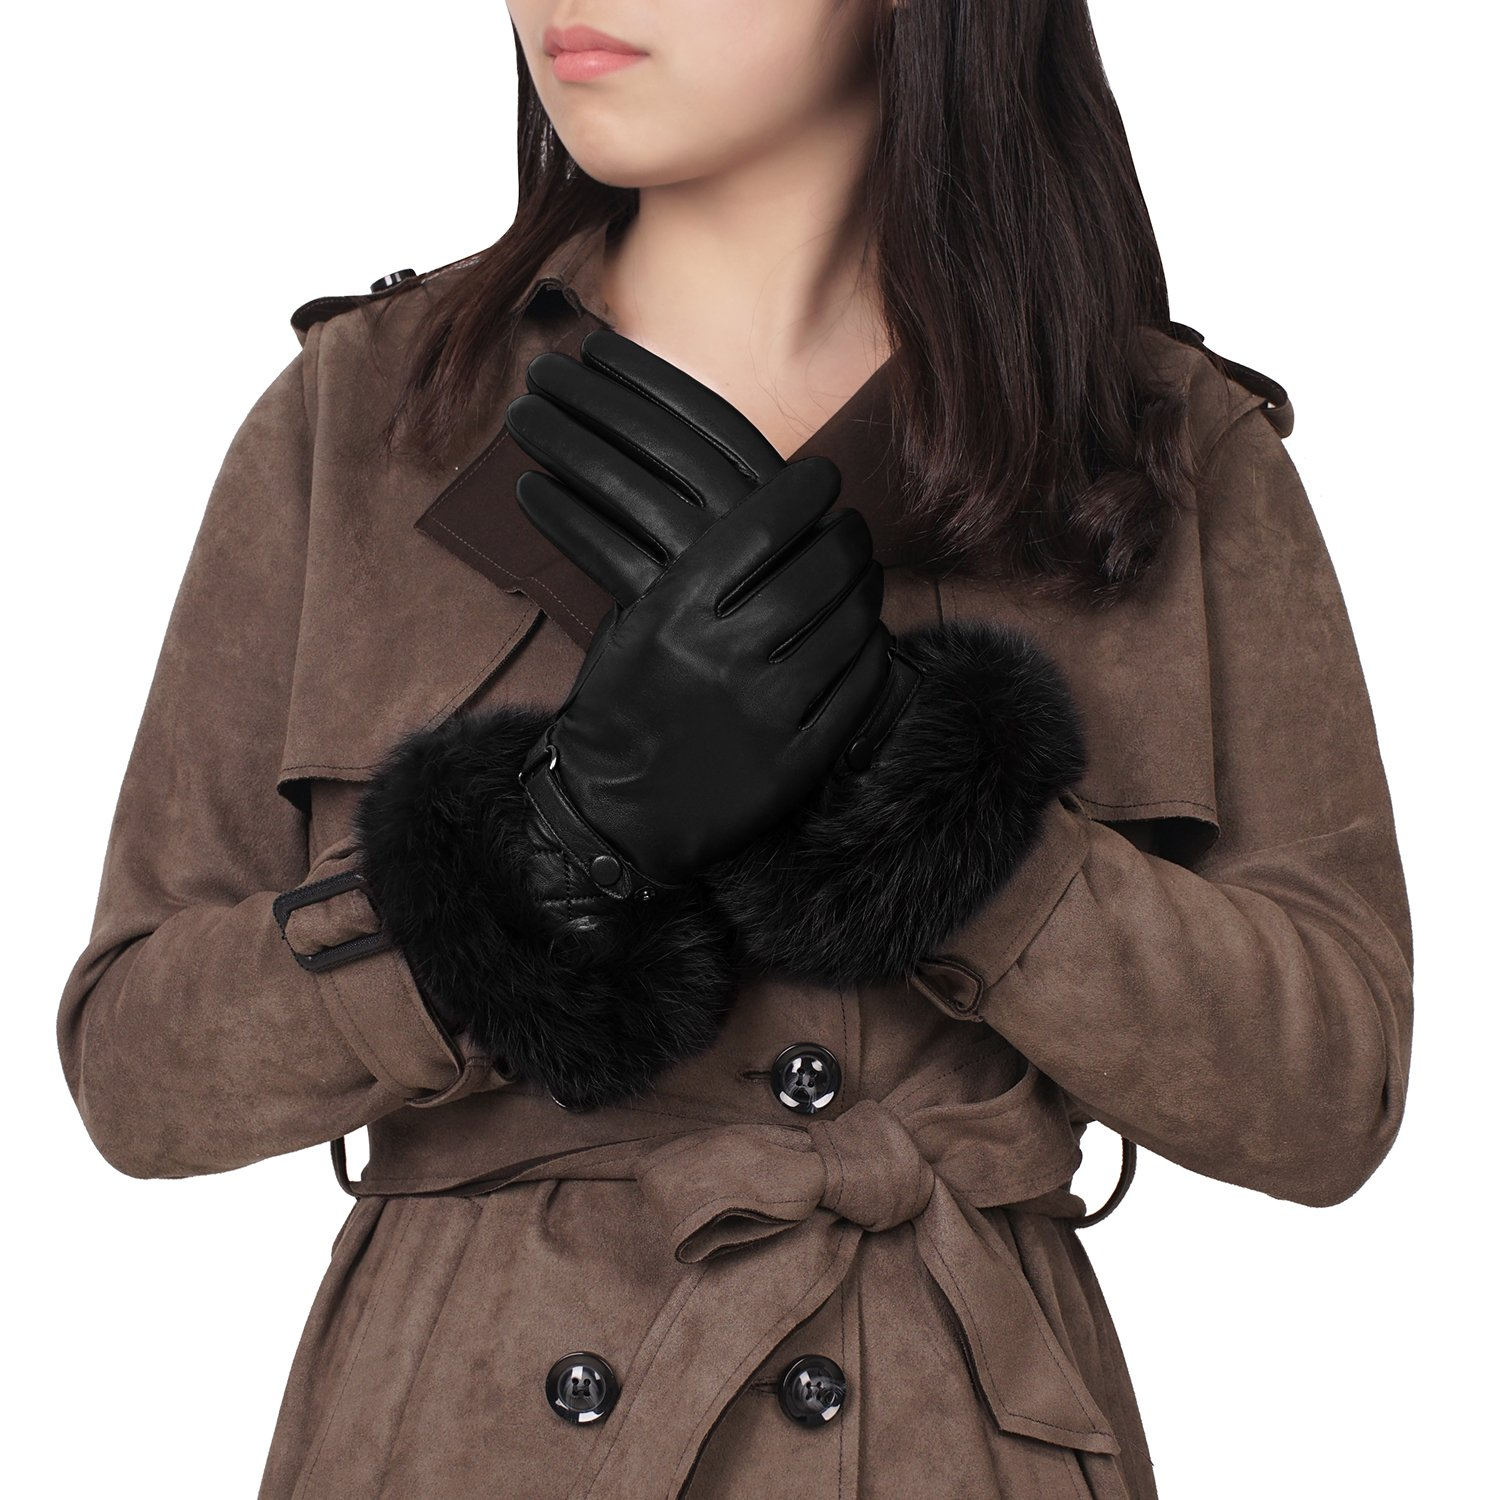 GSG Womens Luxury Italian Genuine Nappa Leather Gloves Fashion Fur Trim Full Palm Touchscreen Winter Warm Gloves Black 8.5 by GSG (Image #1)